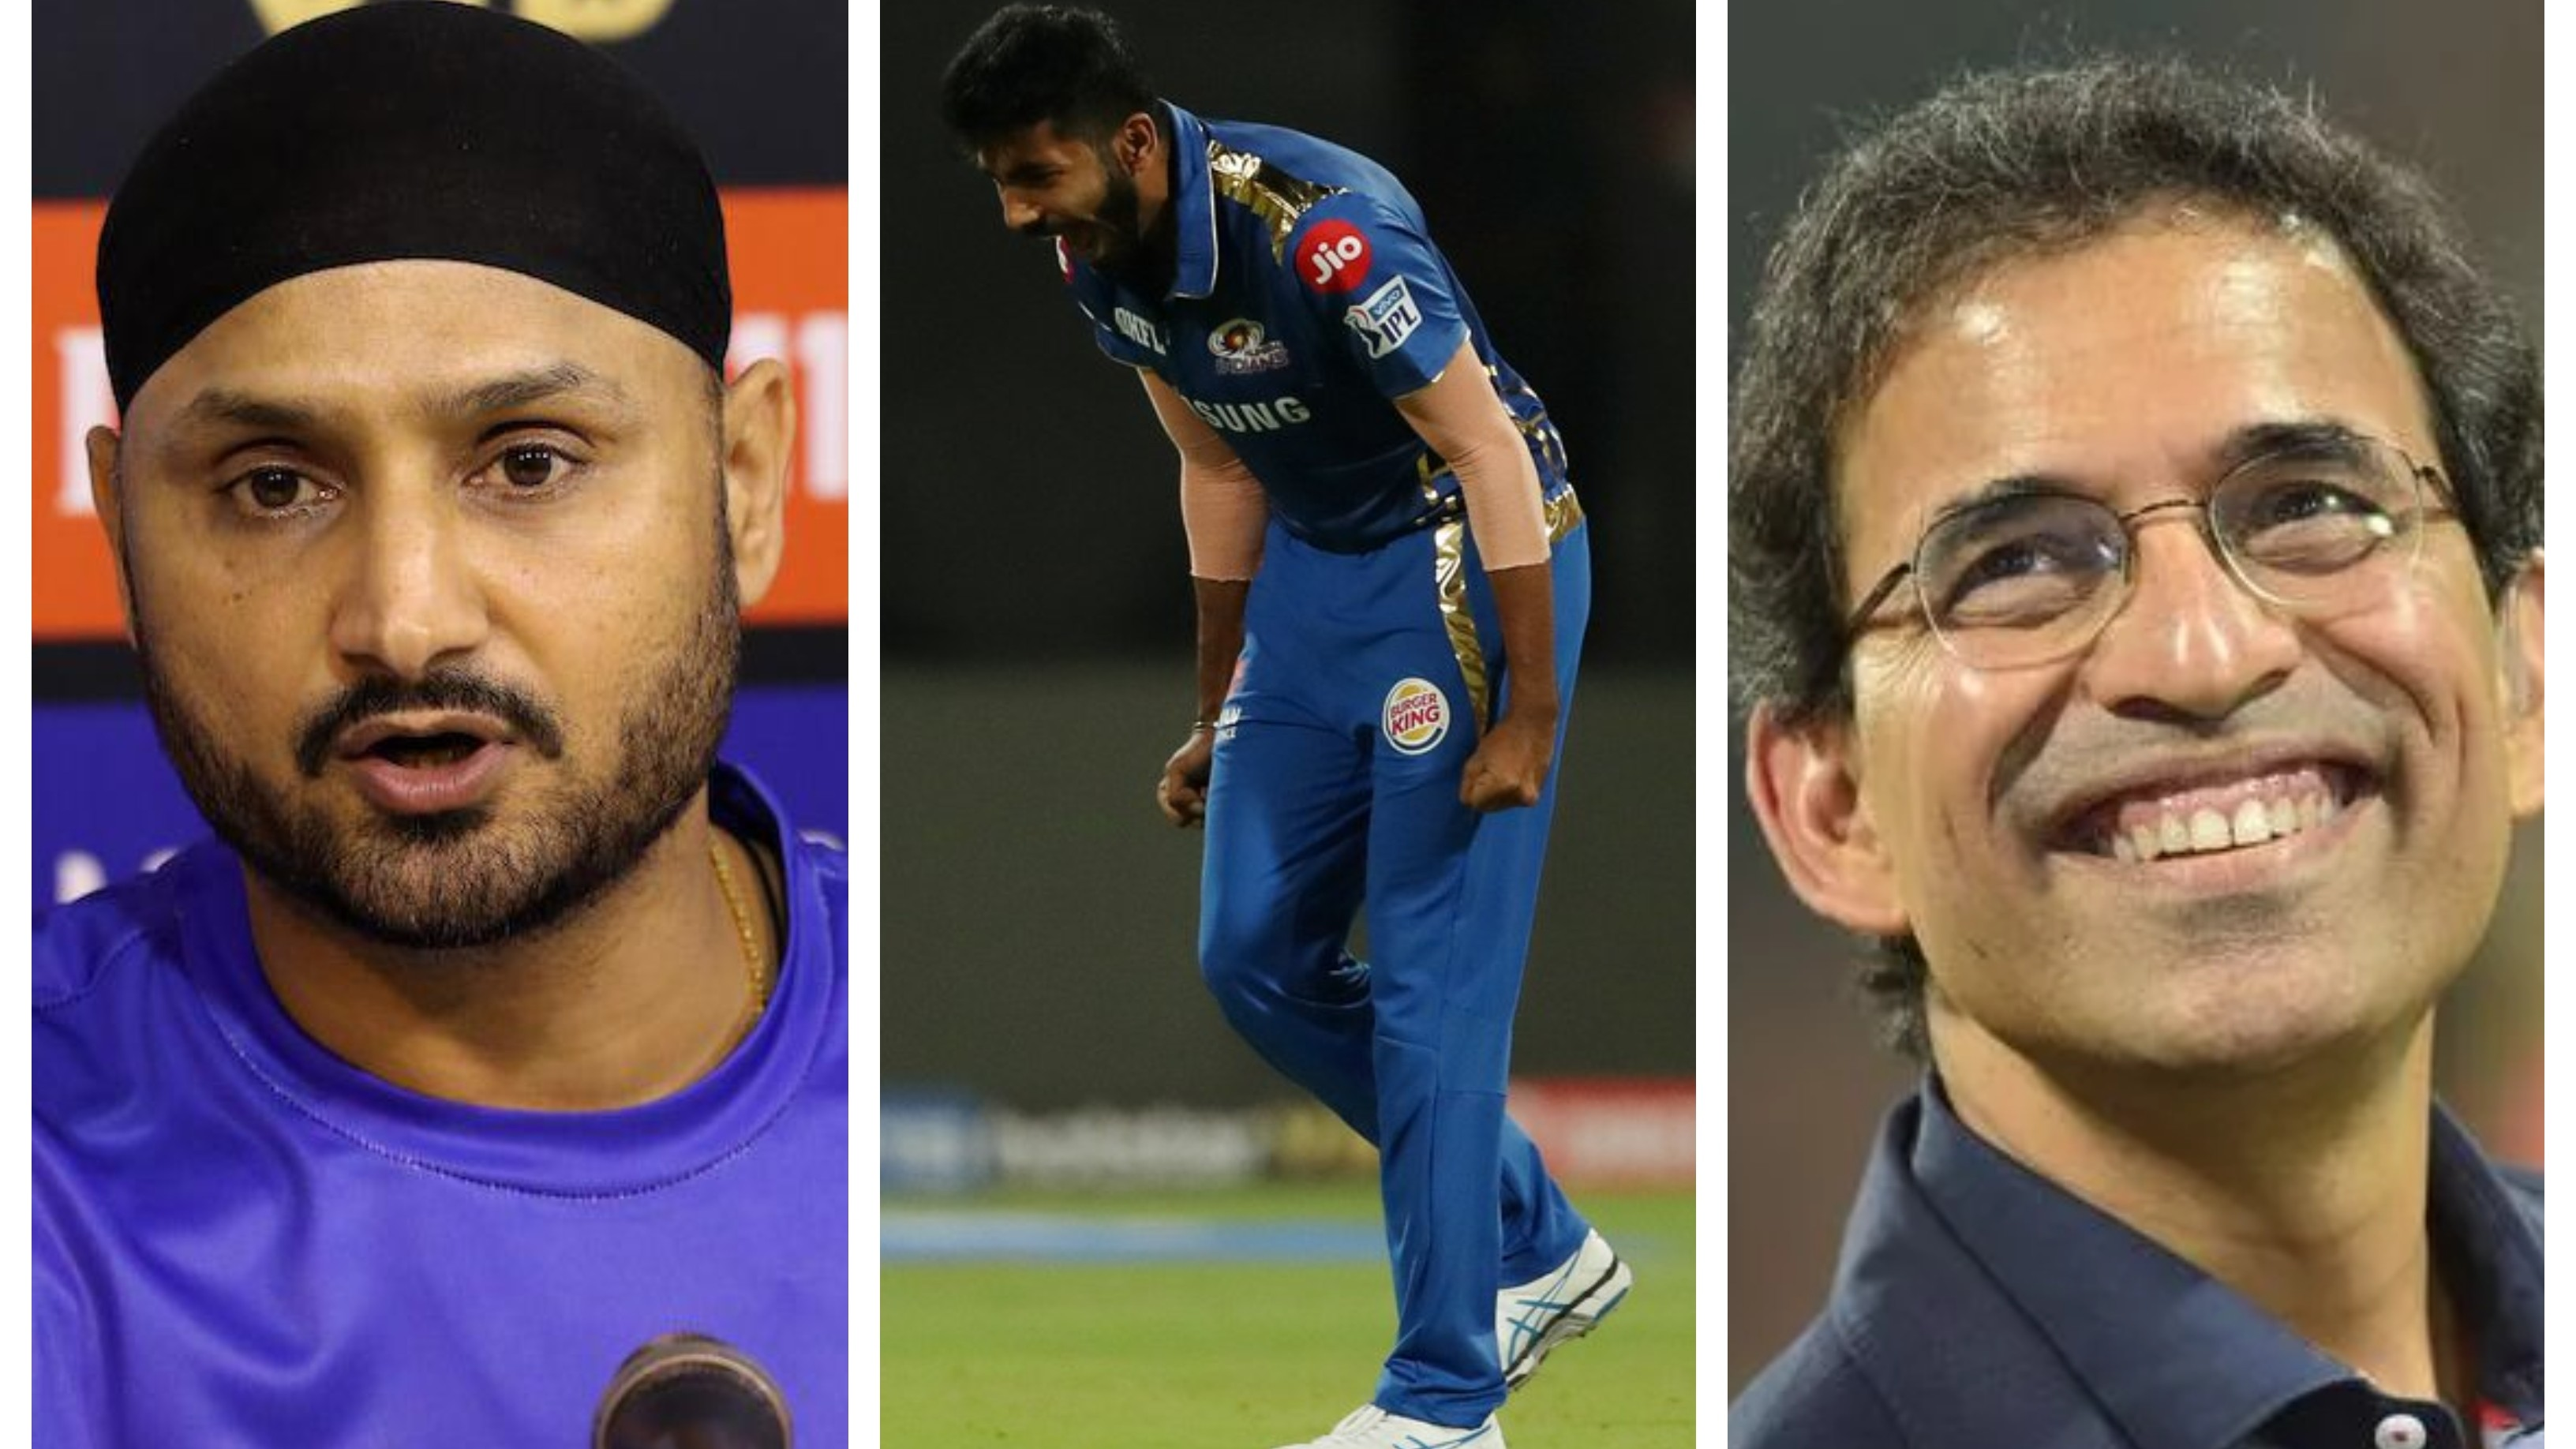 IPL 2019: Cricket fraternity hails Bumrah's remarkable spell that help MI to pull off a thrilling win over RCB